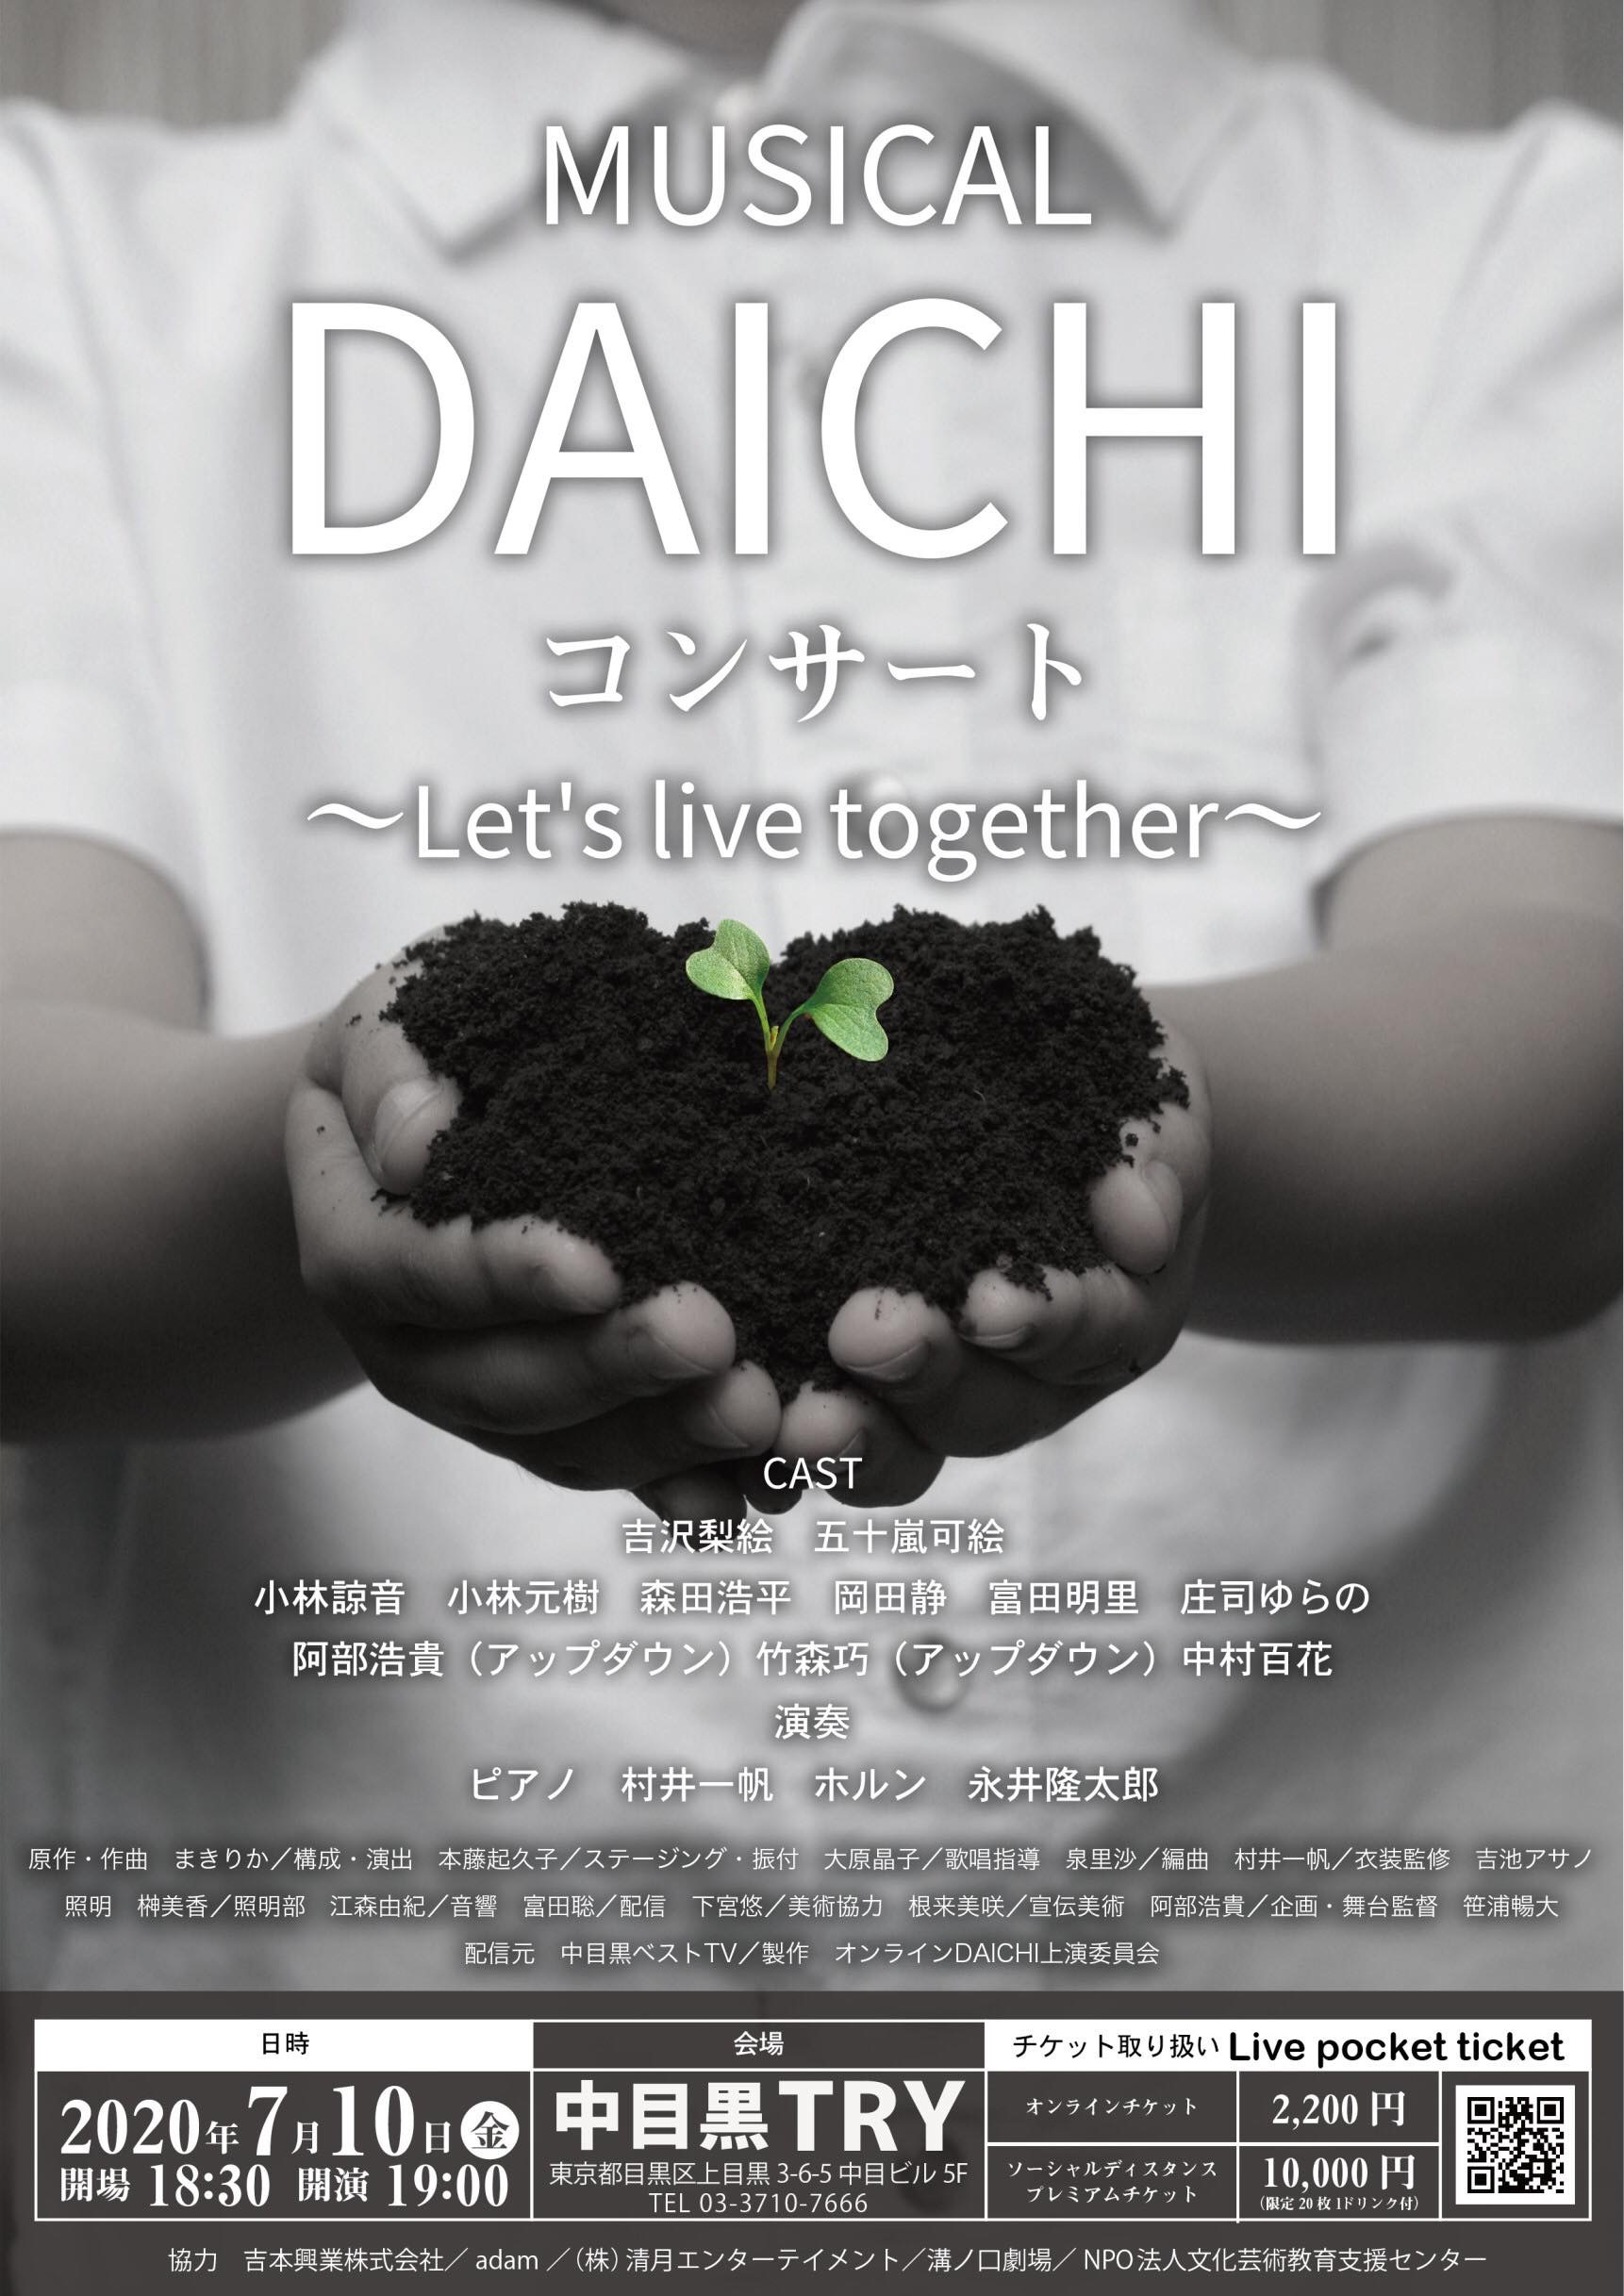 DAICHI コンサート〜Let's live together〜